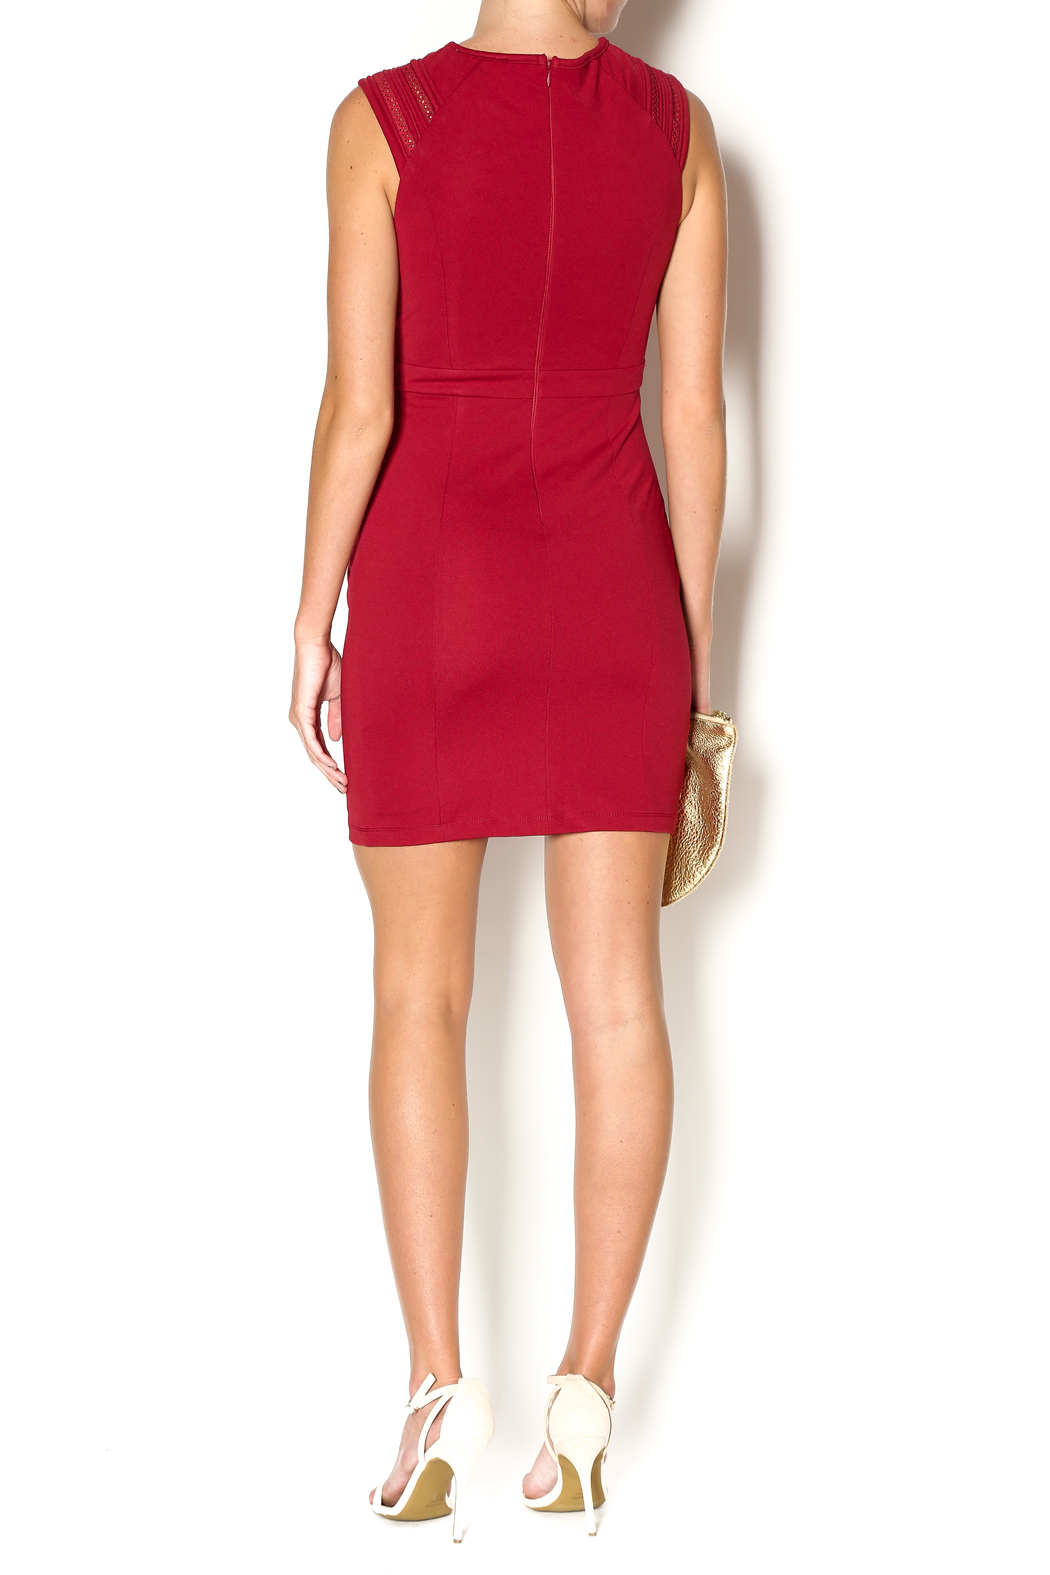 Abby & Taylor Burgundy Sleeveless Dress - Side Cropped Image